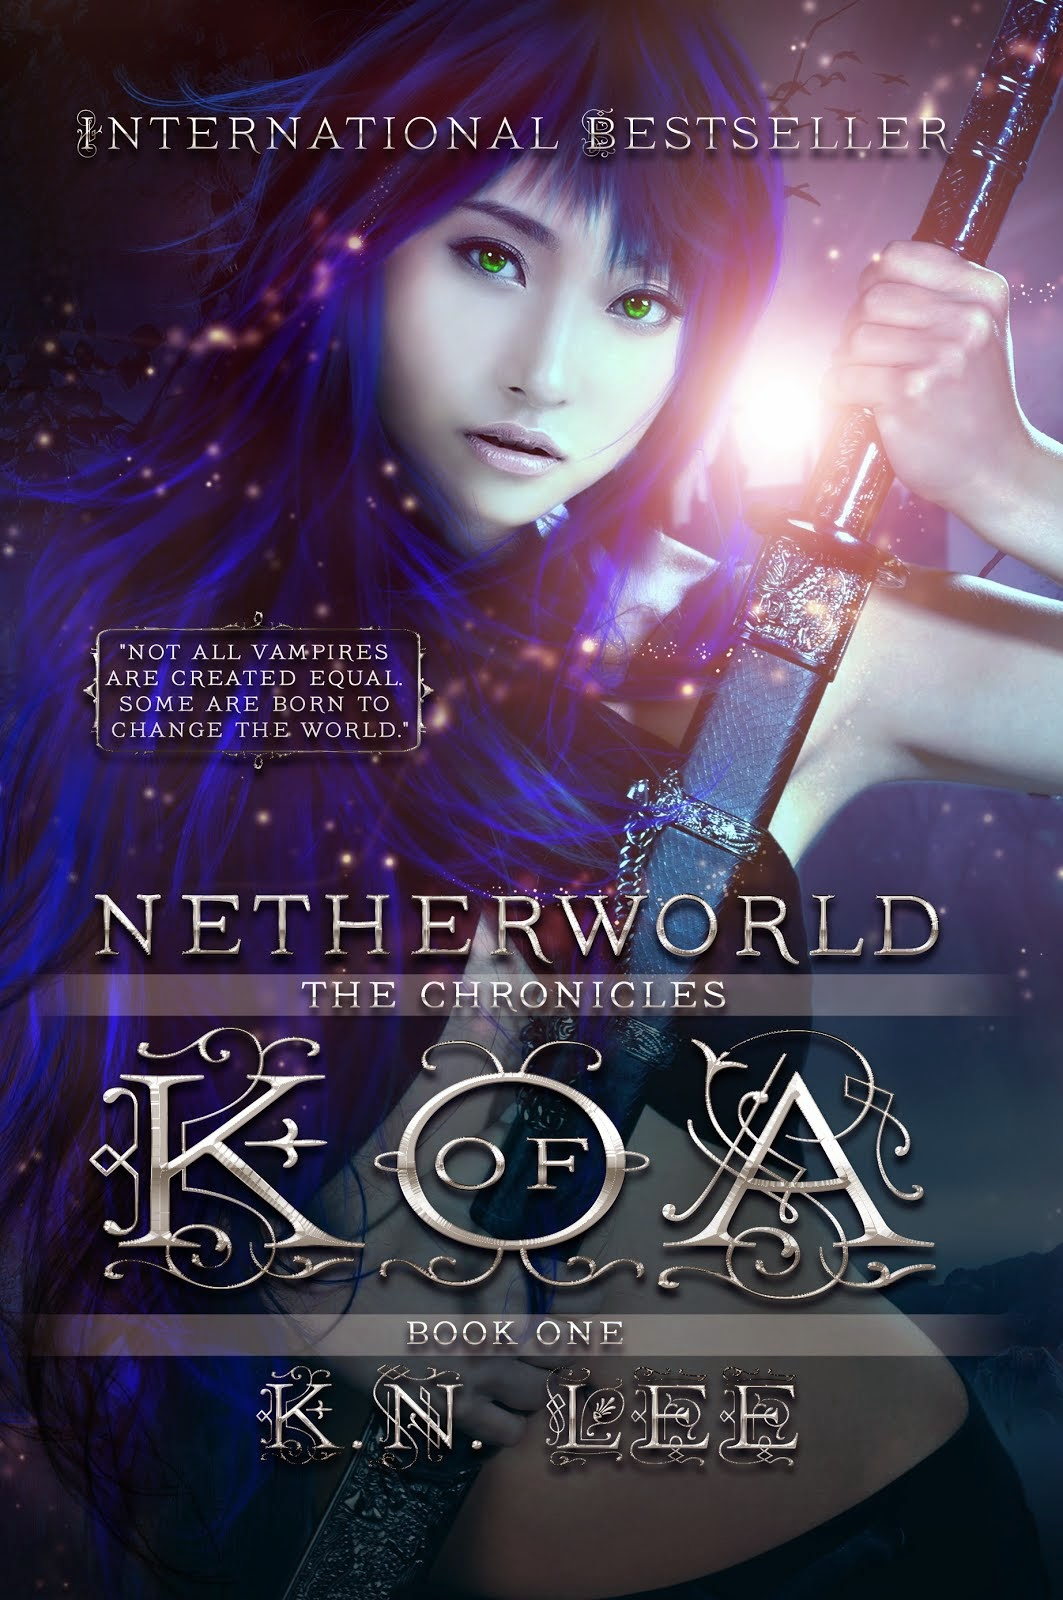 The Chronicles of Koa: Netherworld